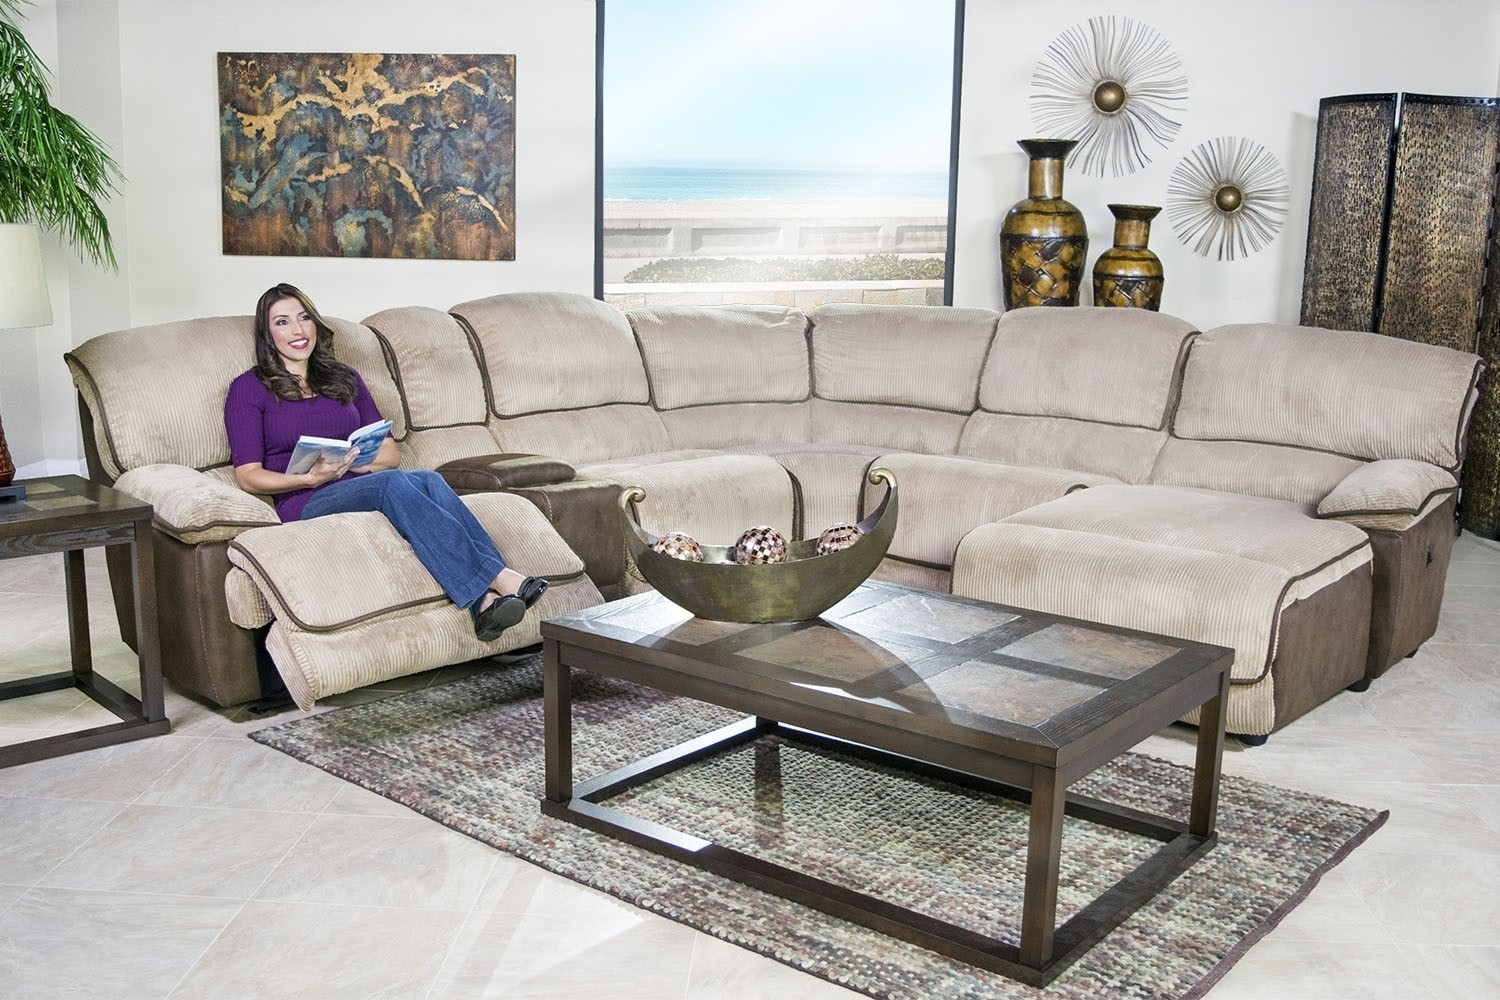 Awesome Sectional Sofa Austin – Buildsimplehome For Austin Sectional Sofas (View 6 of 10)